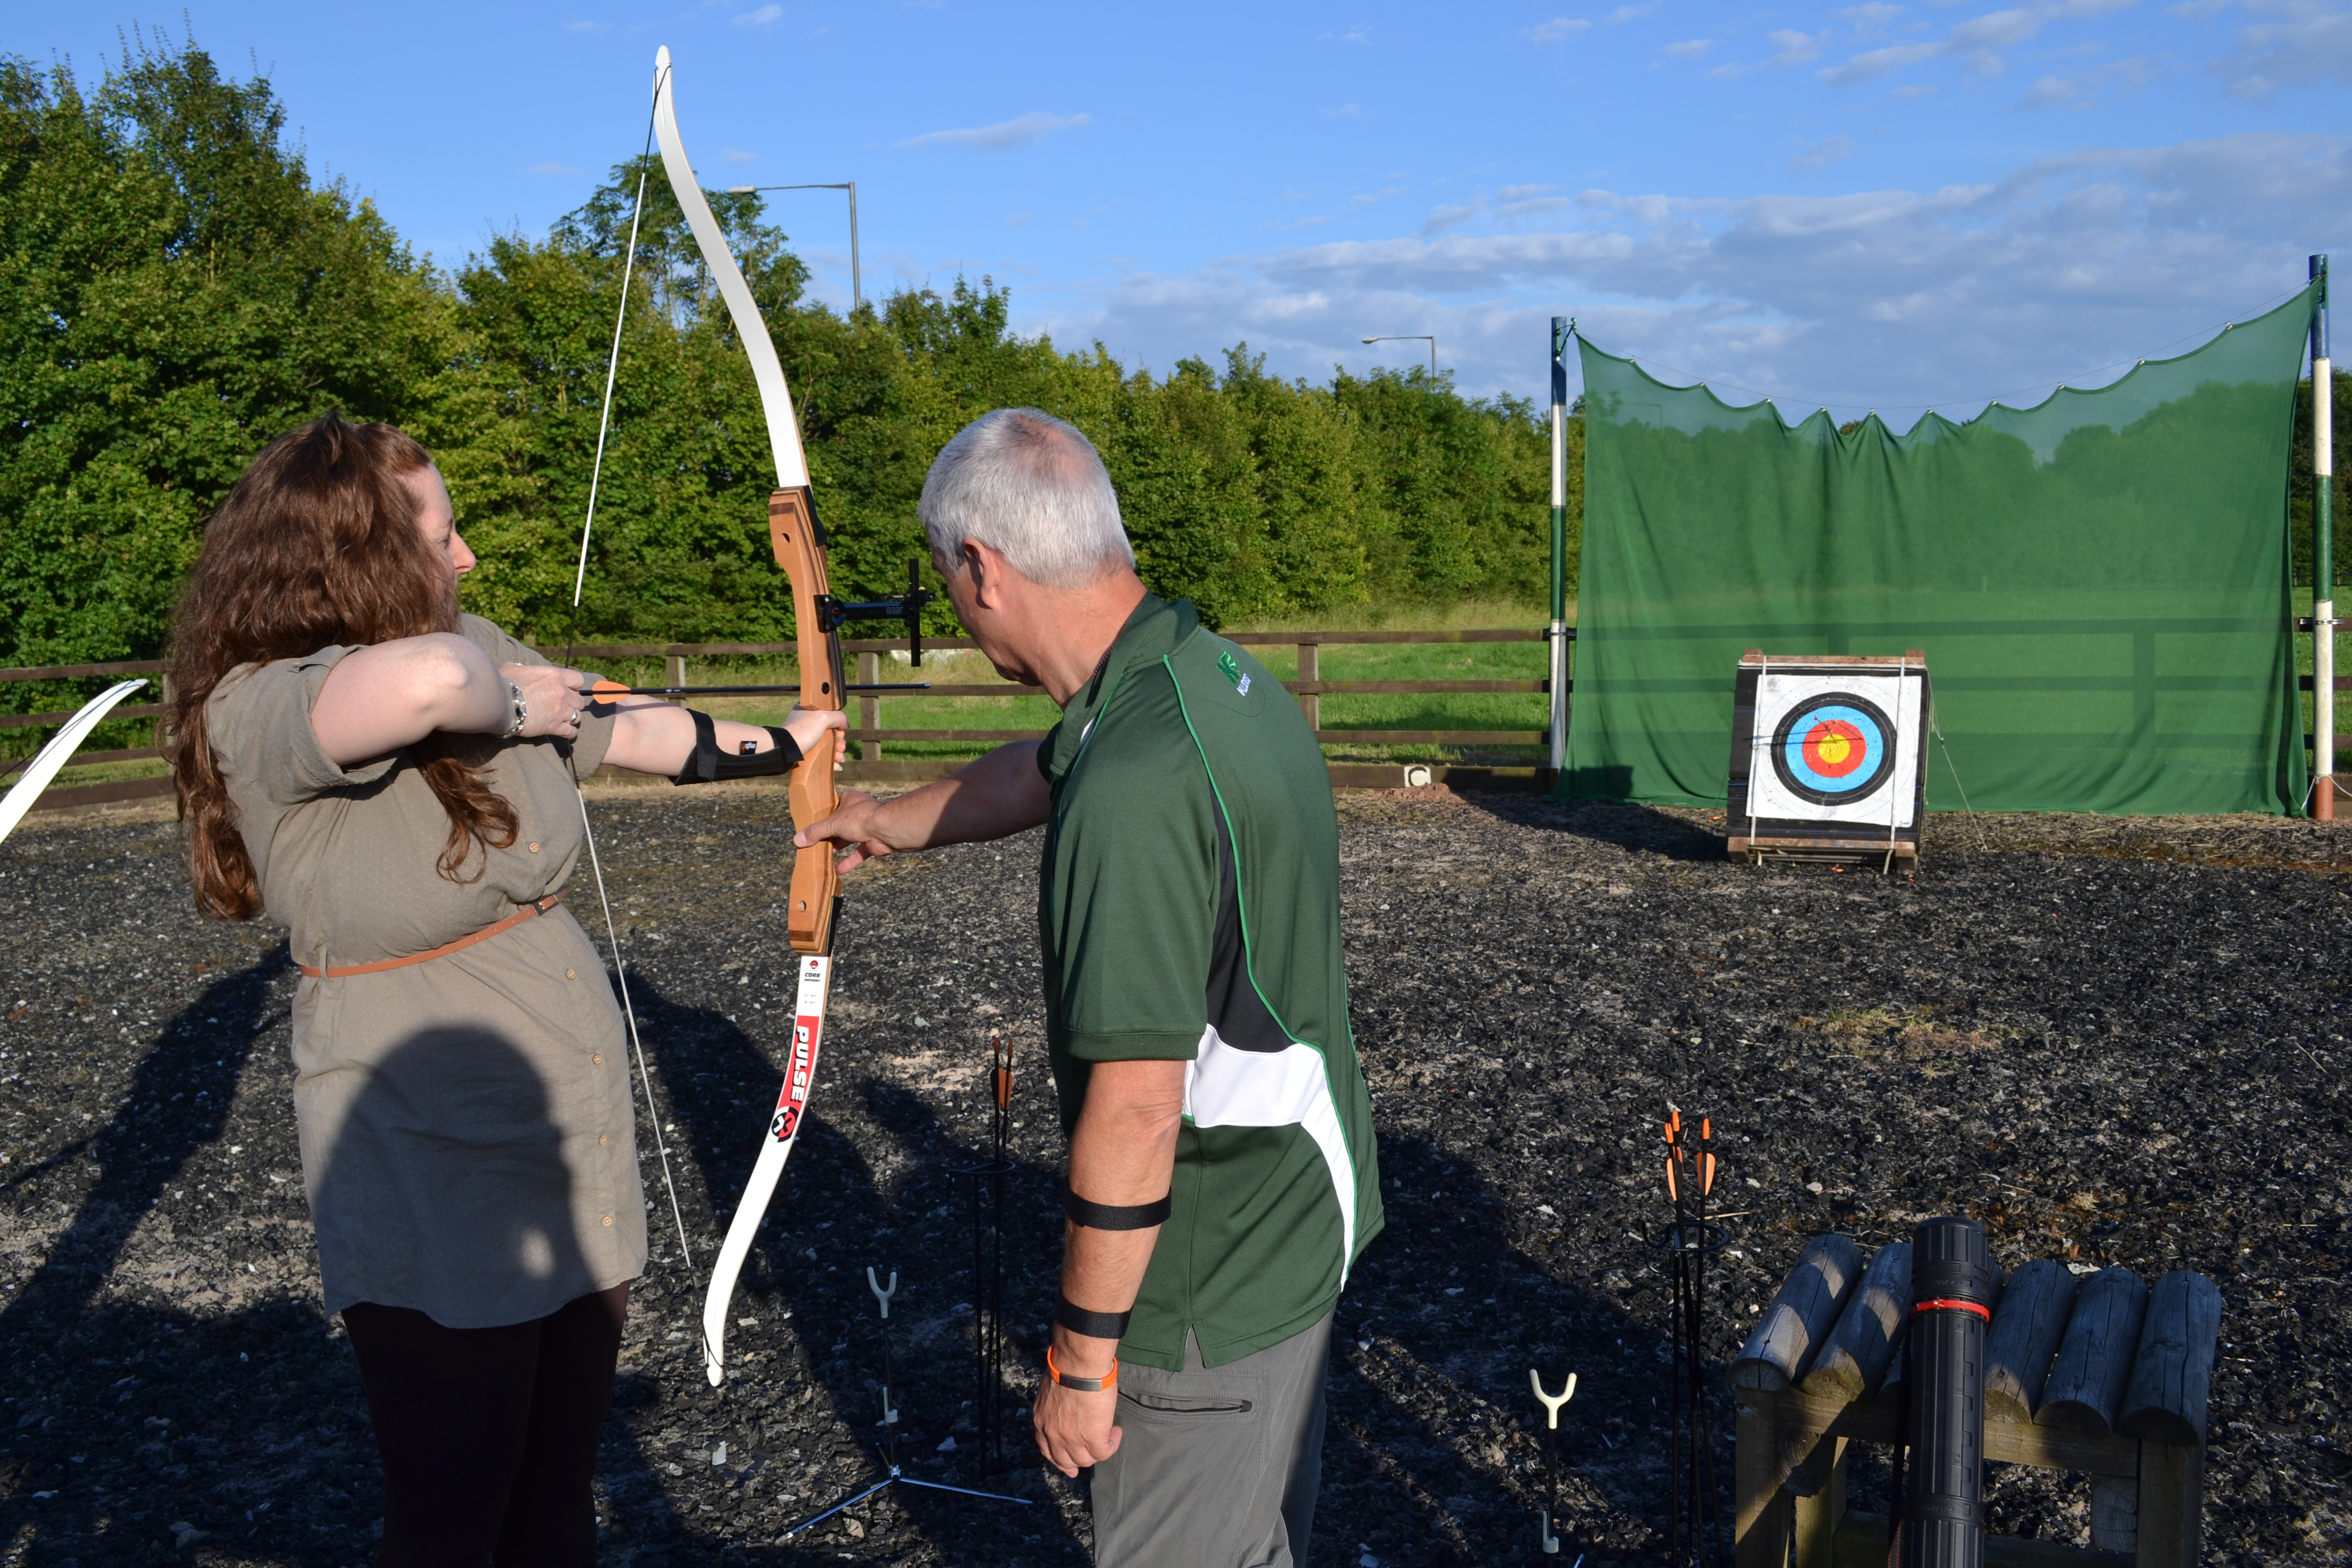 Falconry & Archery Group Activities Available for 2018